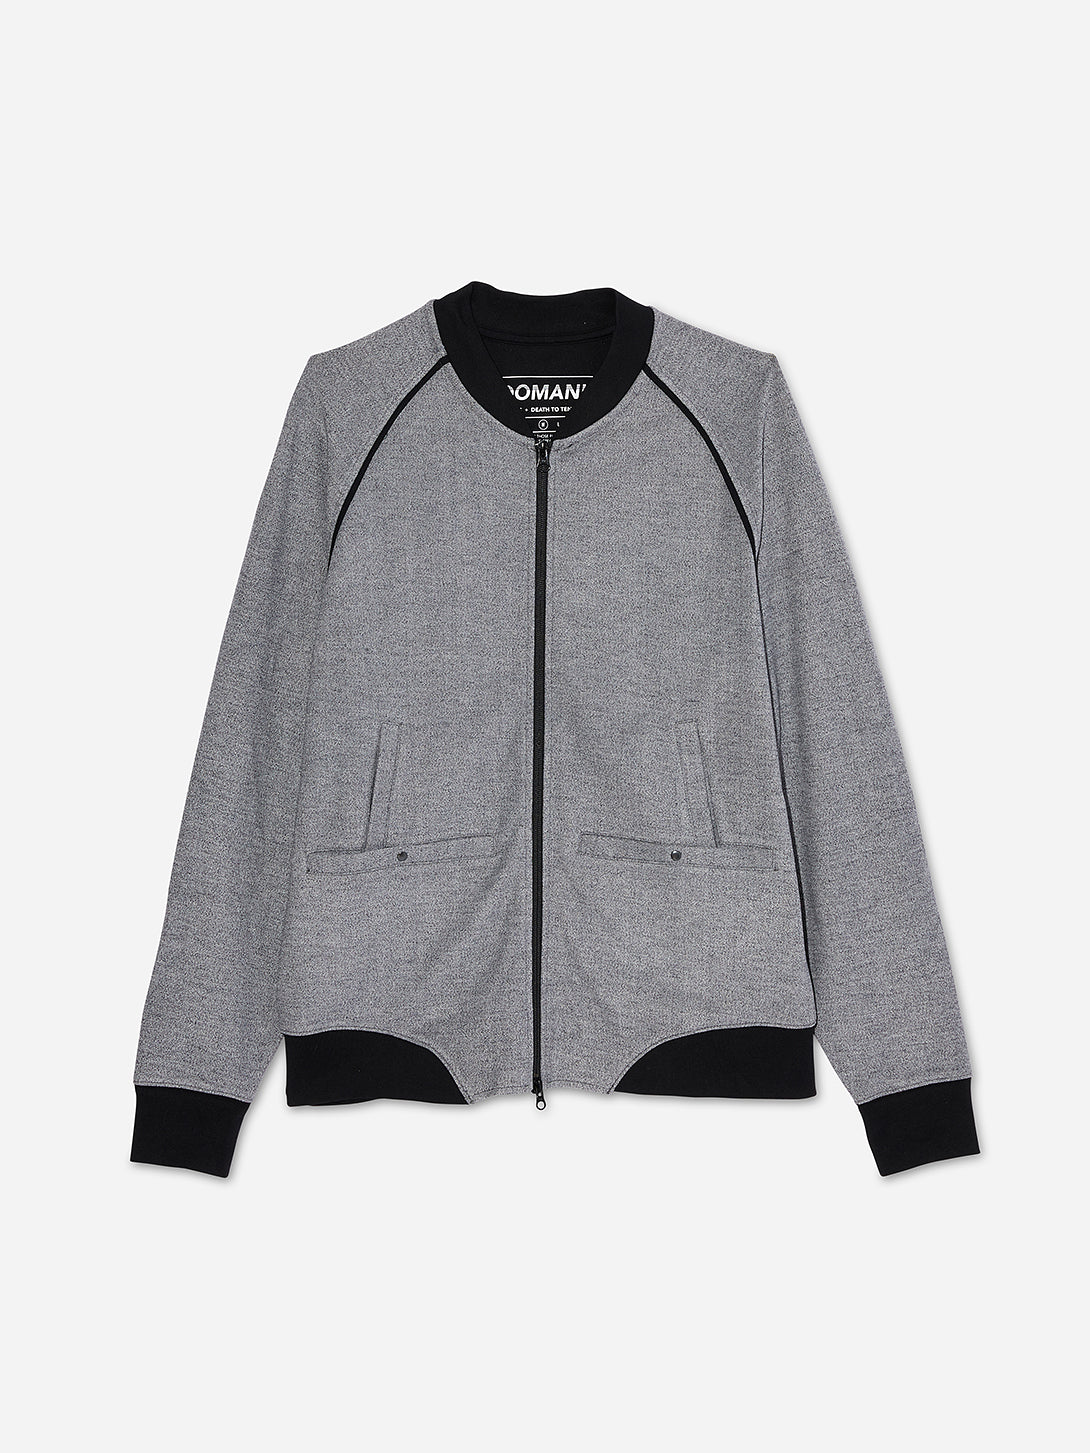 GREY ONS x DTT creative live collaboration  double knit jacket